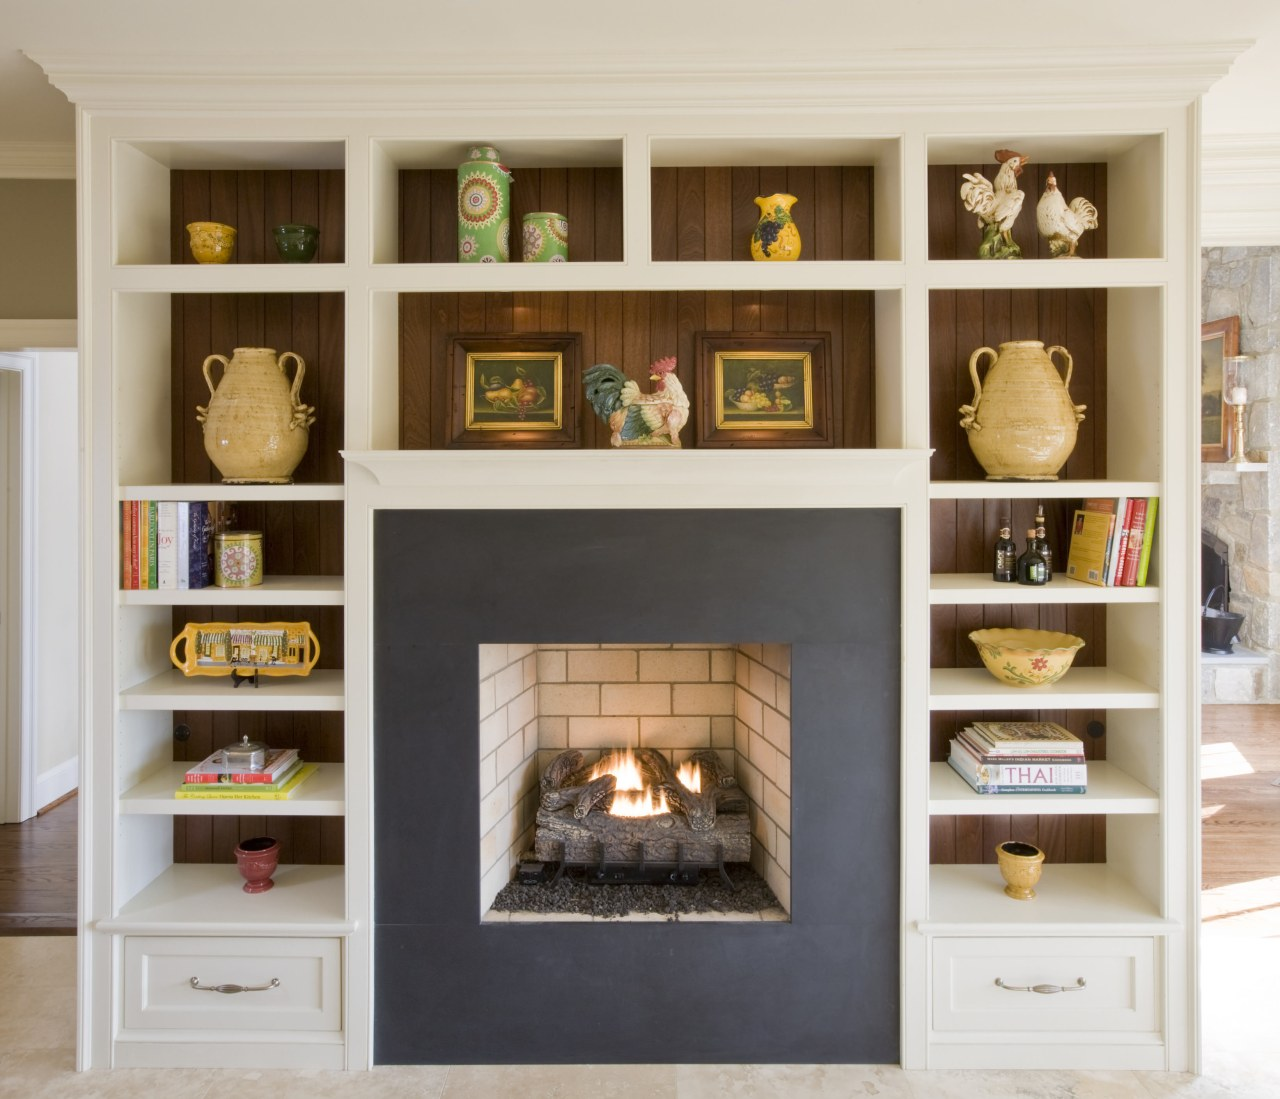 For centuries, the hearth has been the center bookcase, cabinetry, fireplace, furniture, hearth, home, living room, shelf, shelving, white